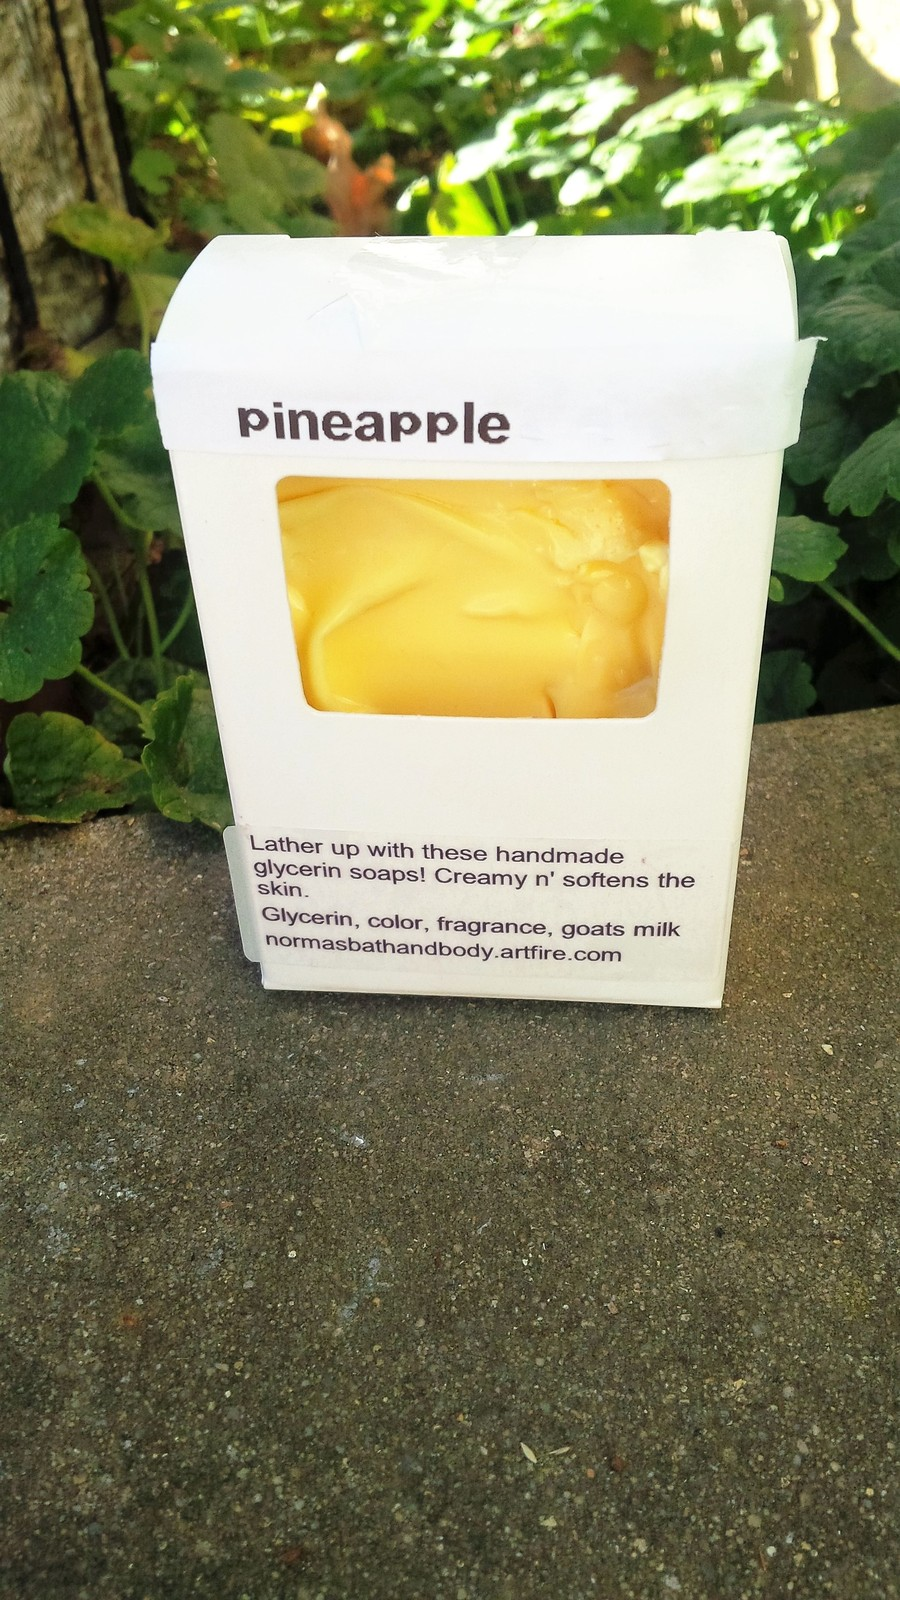 Pineapple soap in a box